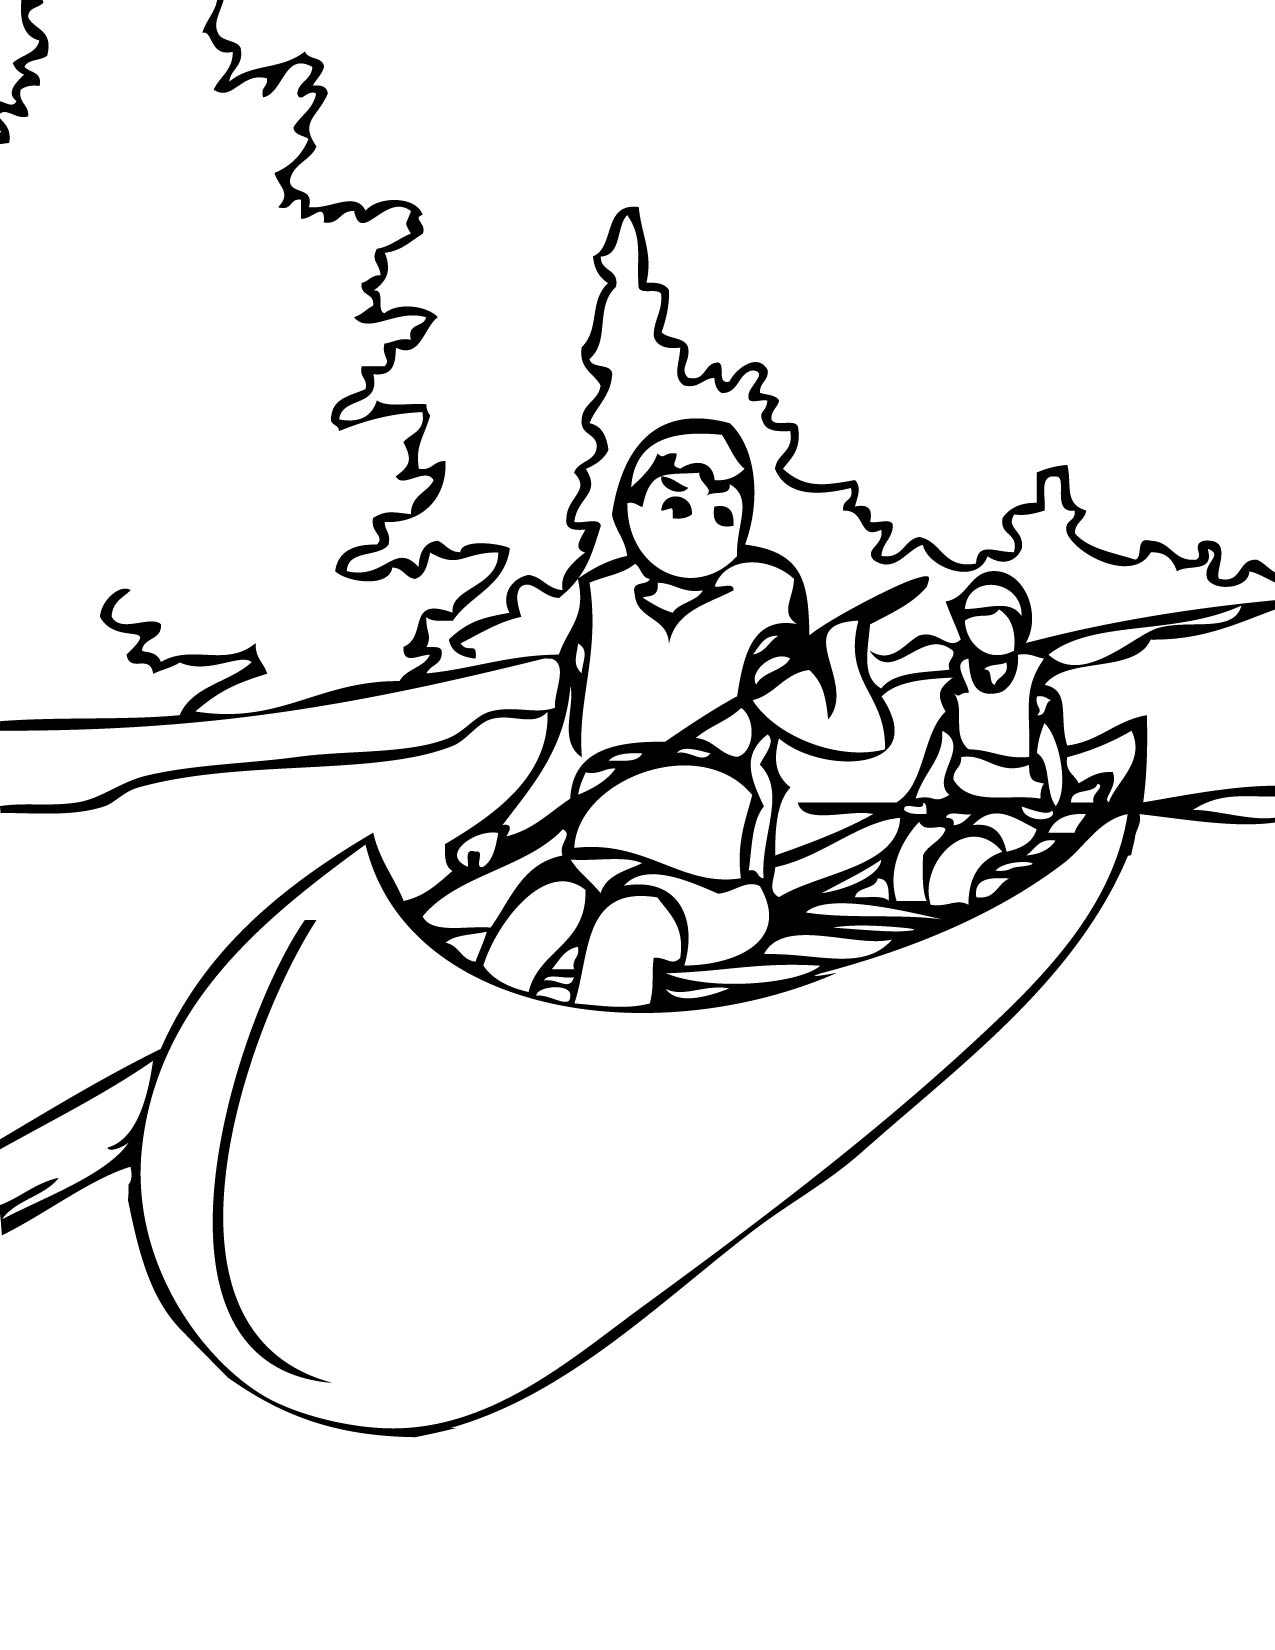 1275x1650 Canoe Trip Free Coloring Page Kids, Sports Coloring Pages